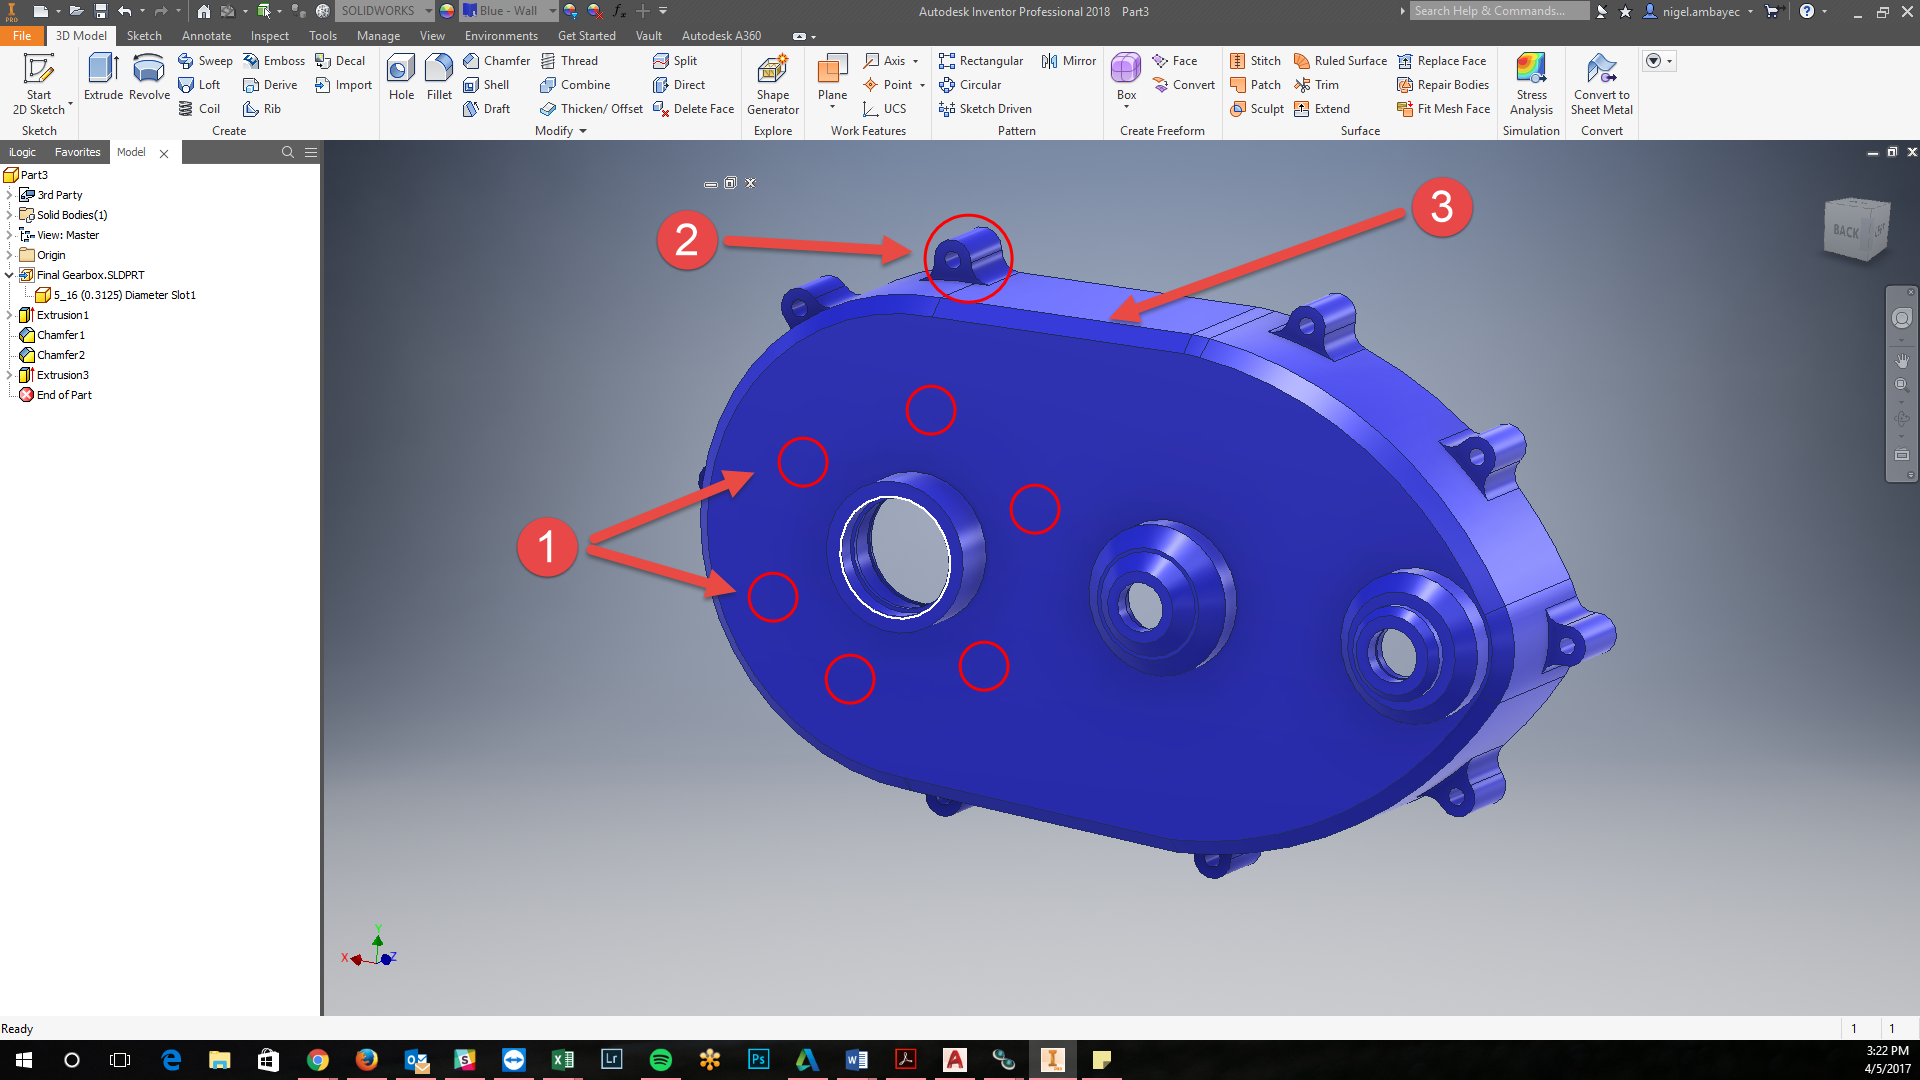 Autodesk Inventor AnyCAD - Updated Design